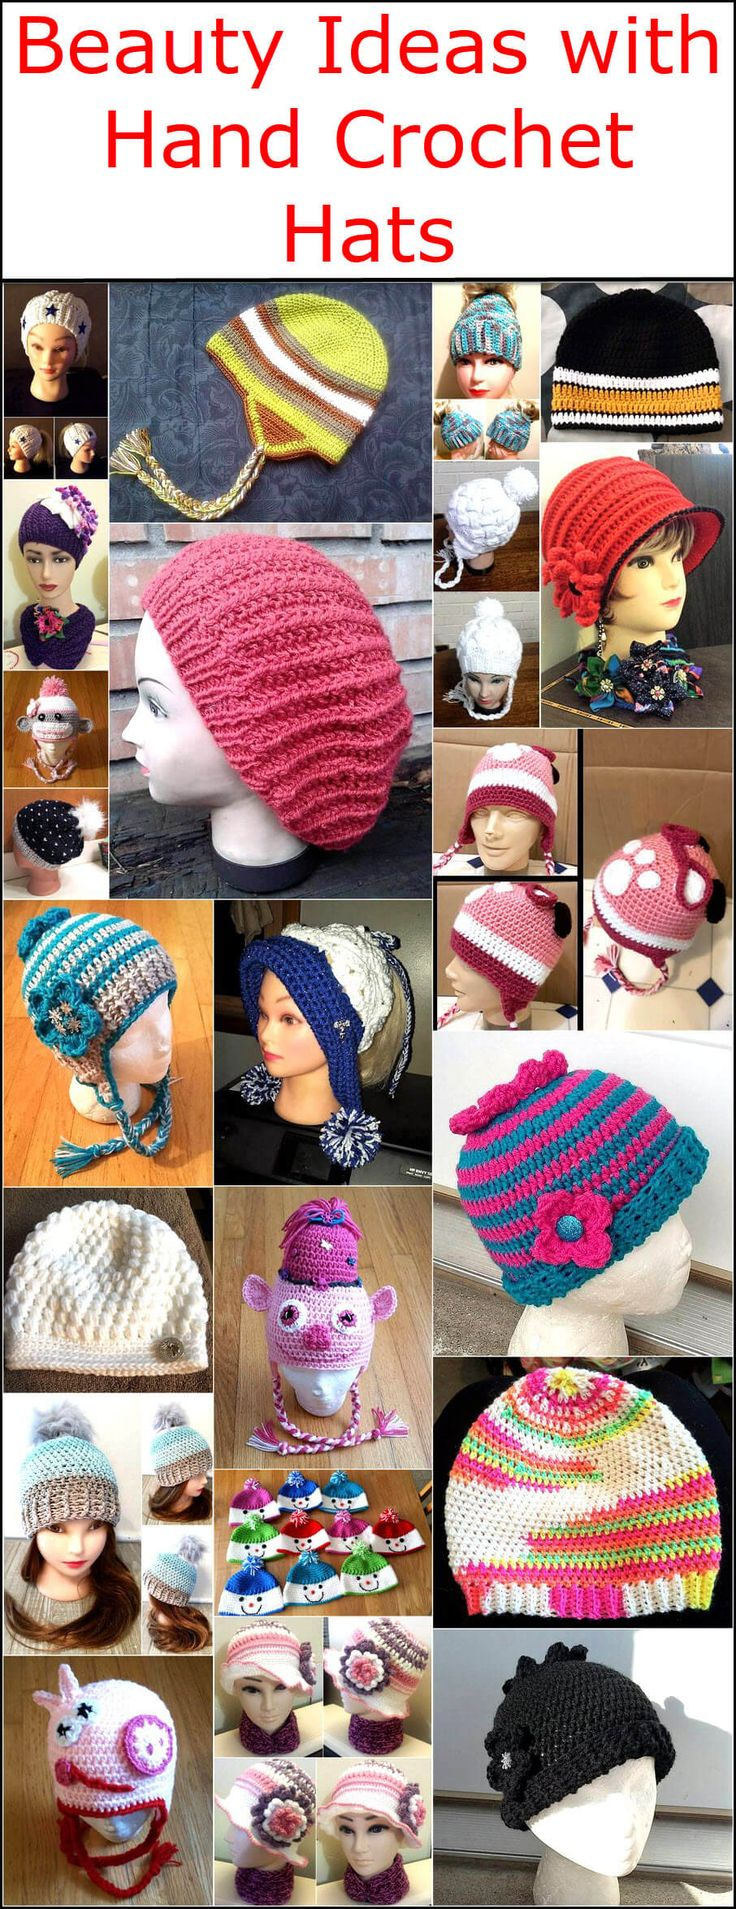 Beauty Ideas with Hand Crochet Hats – Crochet and knitting